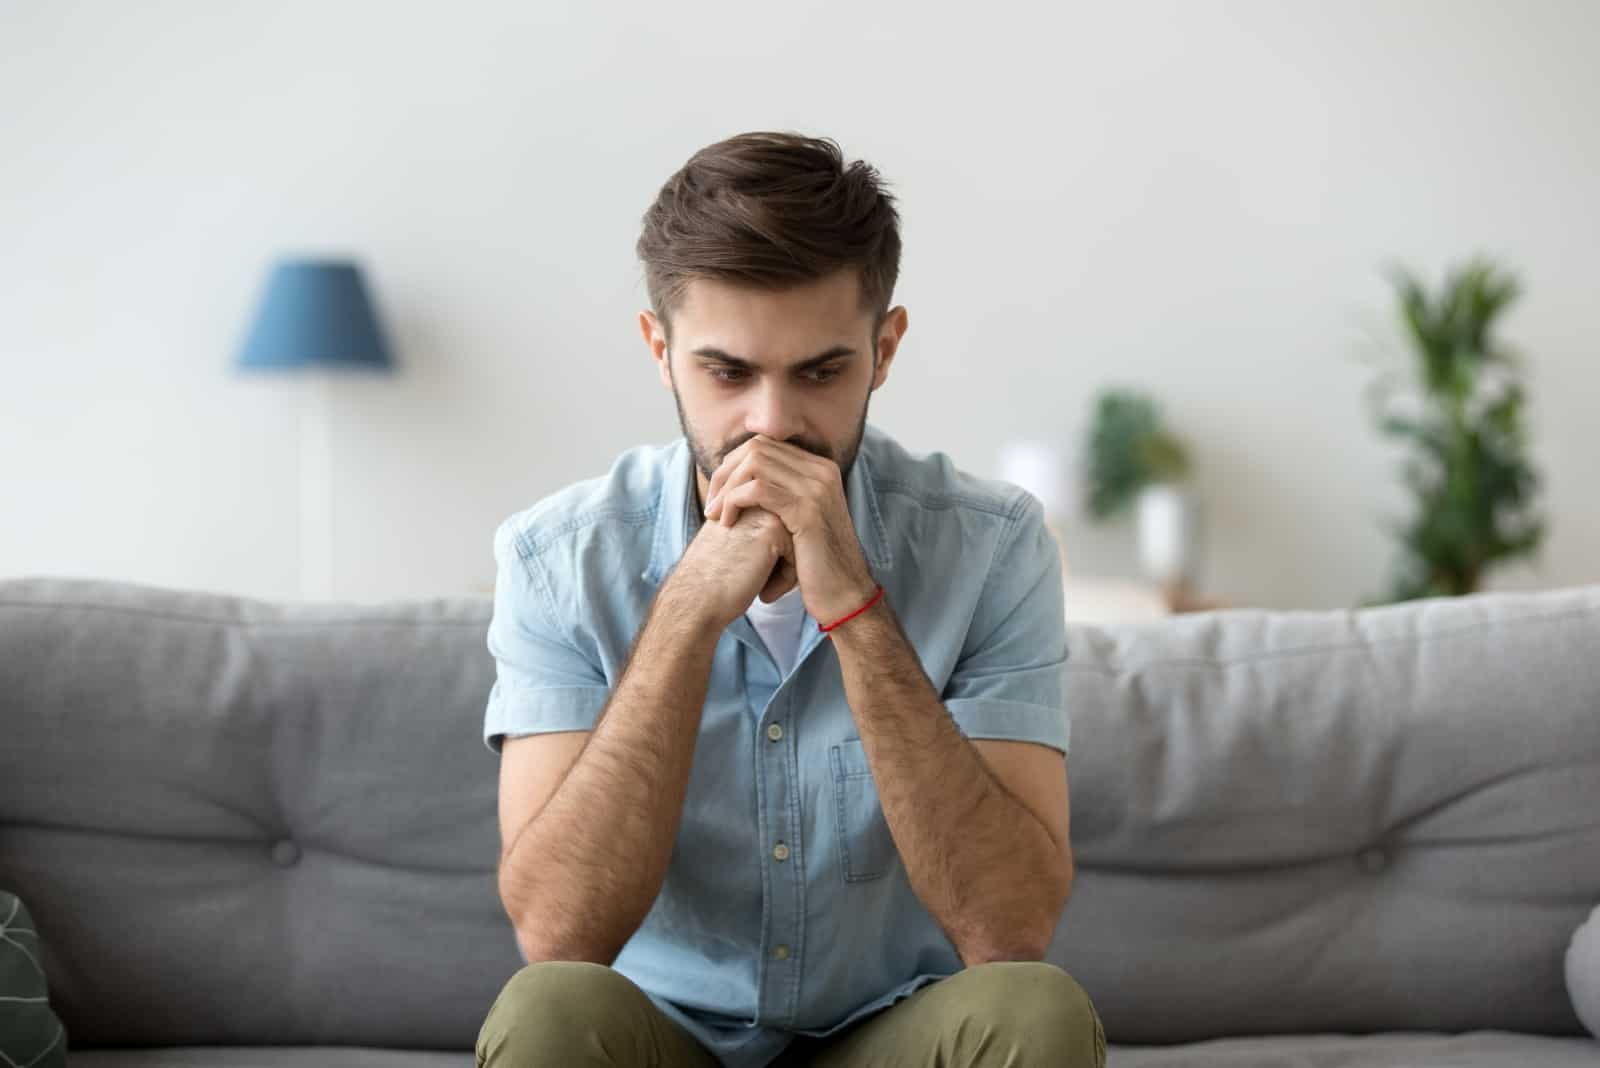 pensive man in blue shirt sitting on sofa